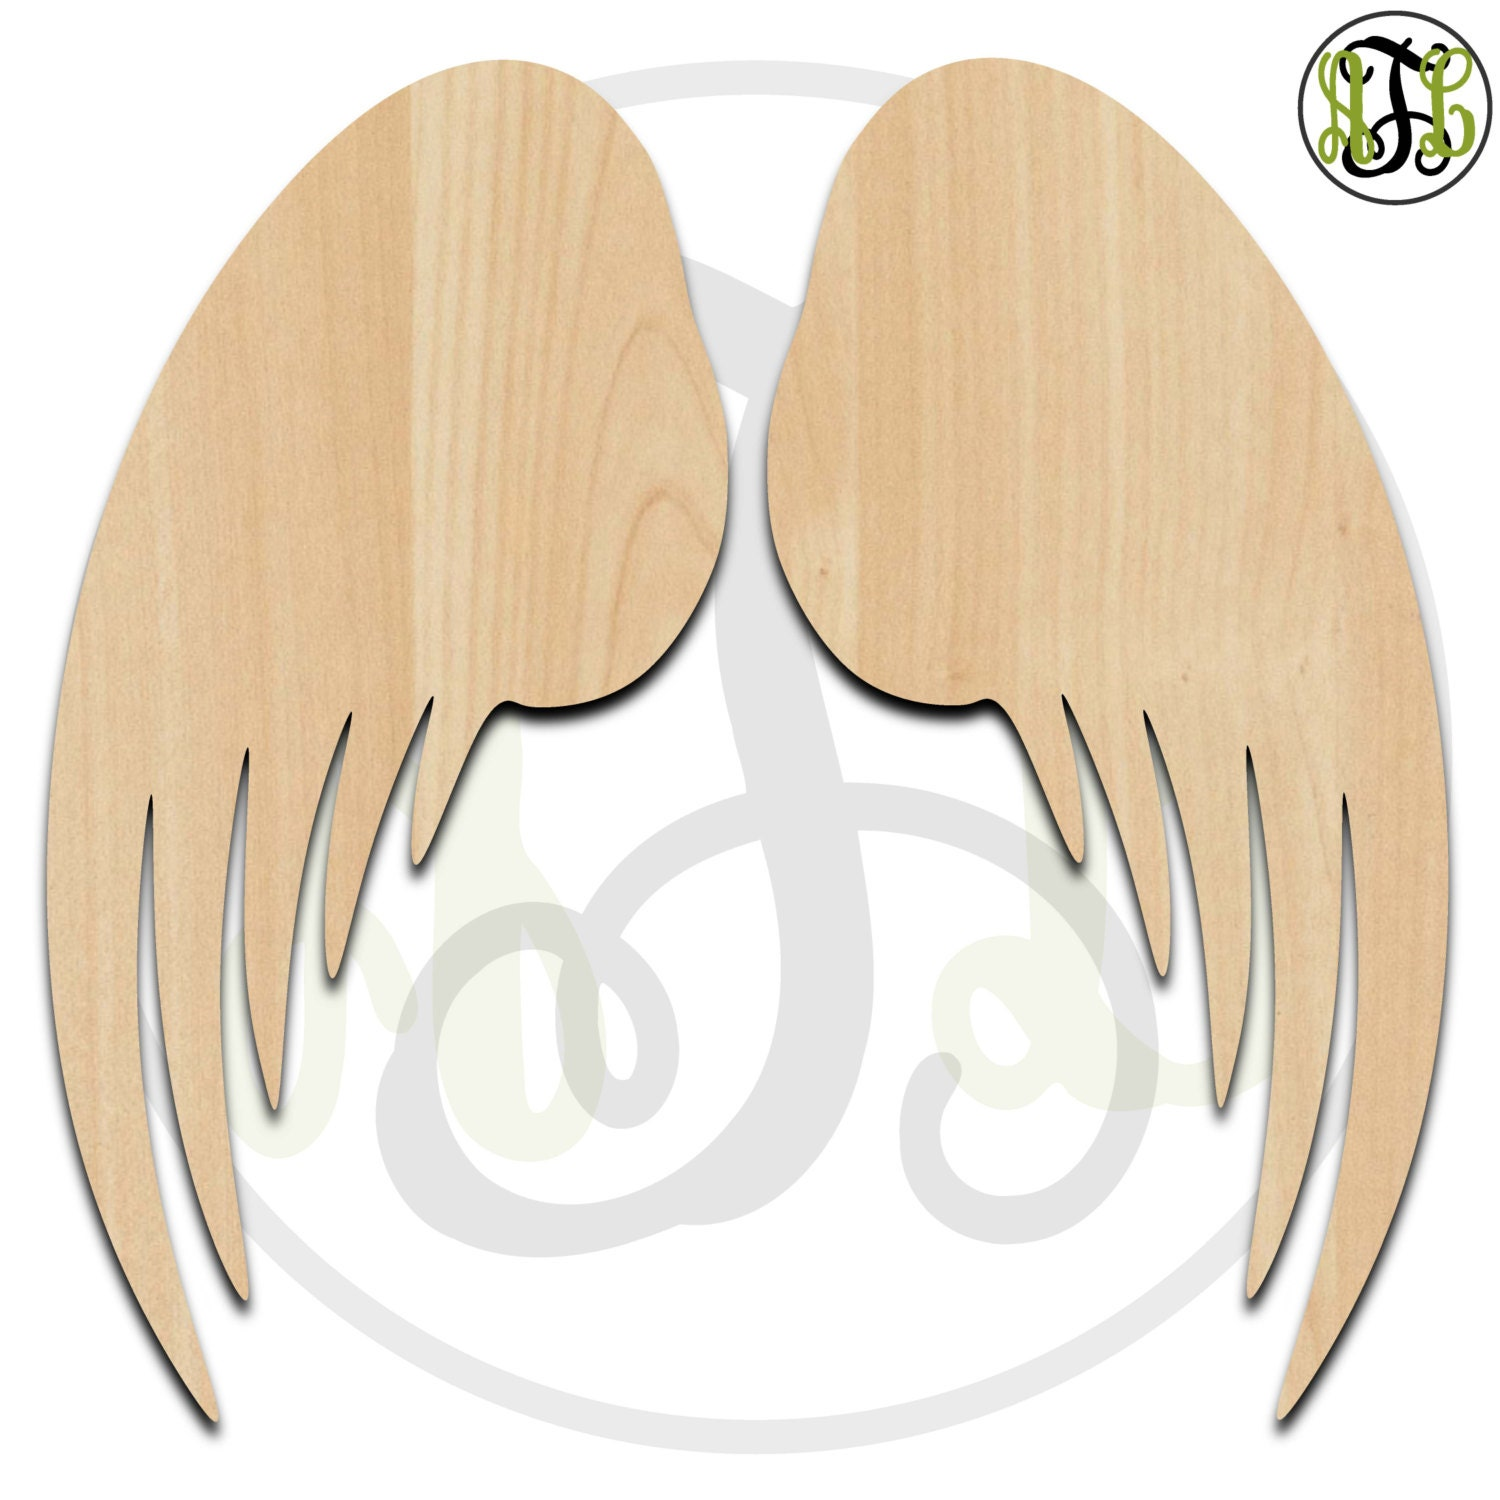 Pair of Angel Wings - 300073- 2 Wing Cutouts, unfinished, wood ...